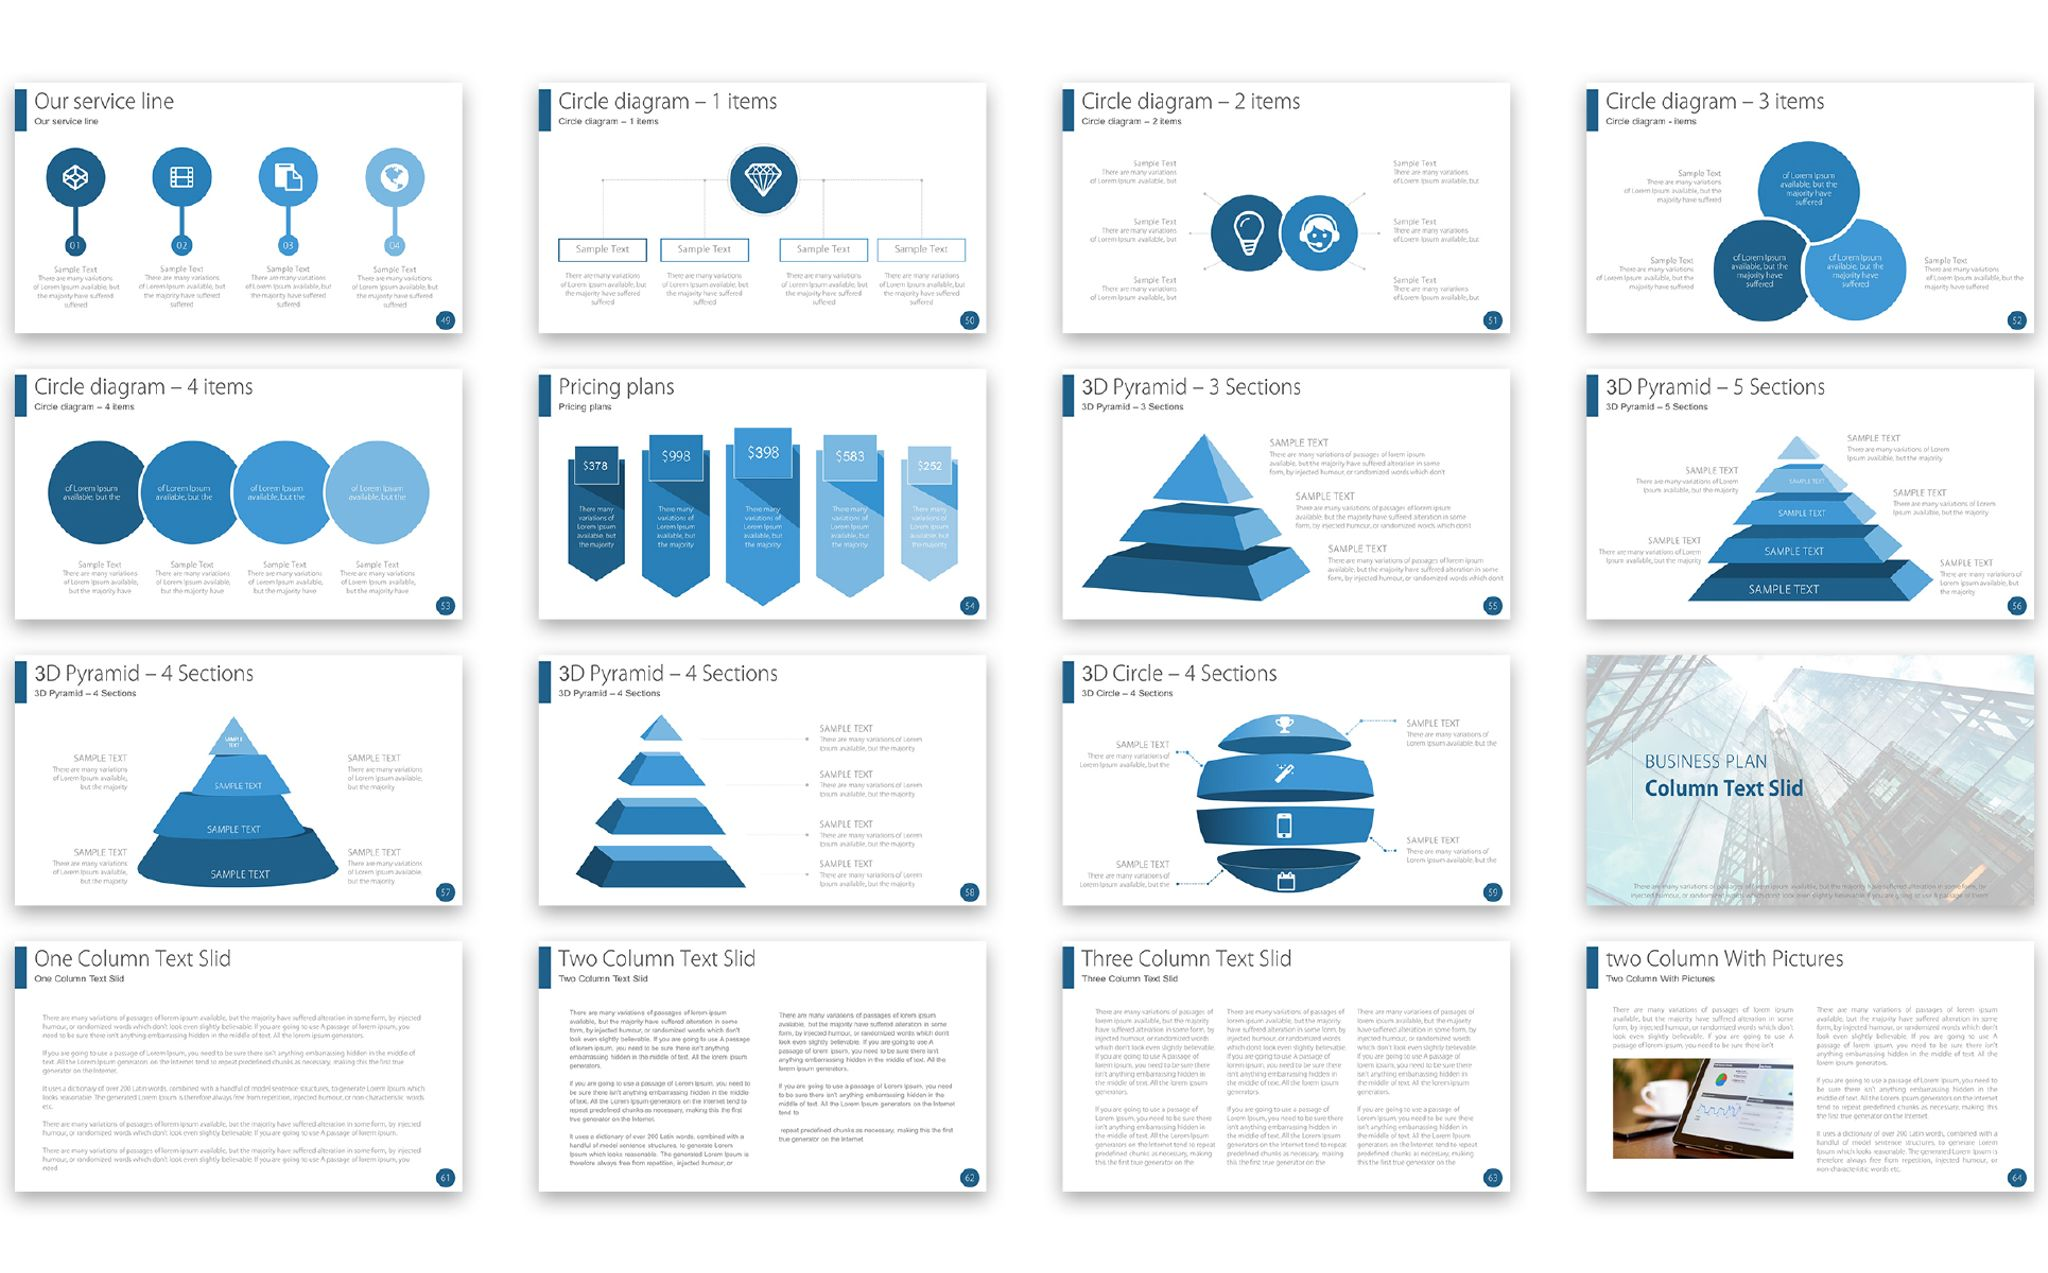 Business plan powerpoint template 67200 business plan powerpoint template big screenshot toneelgroepblik Choice Image